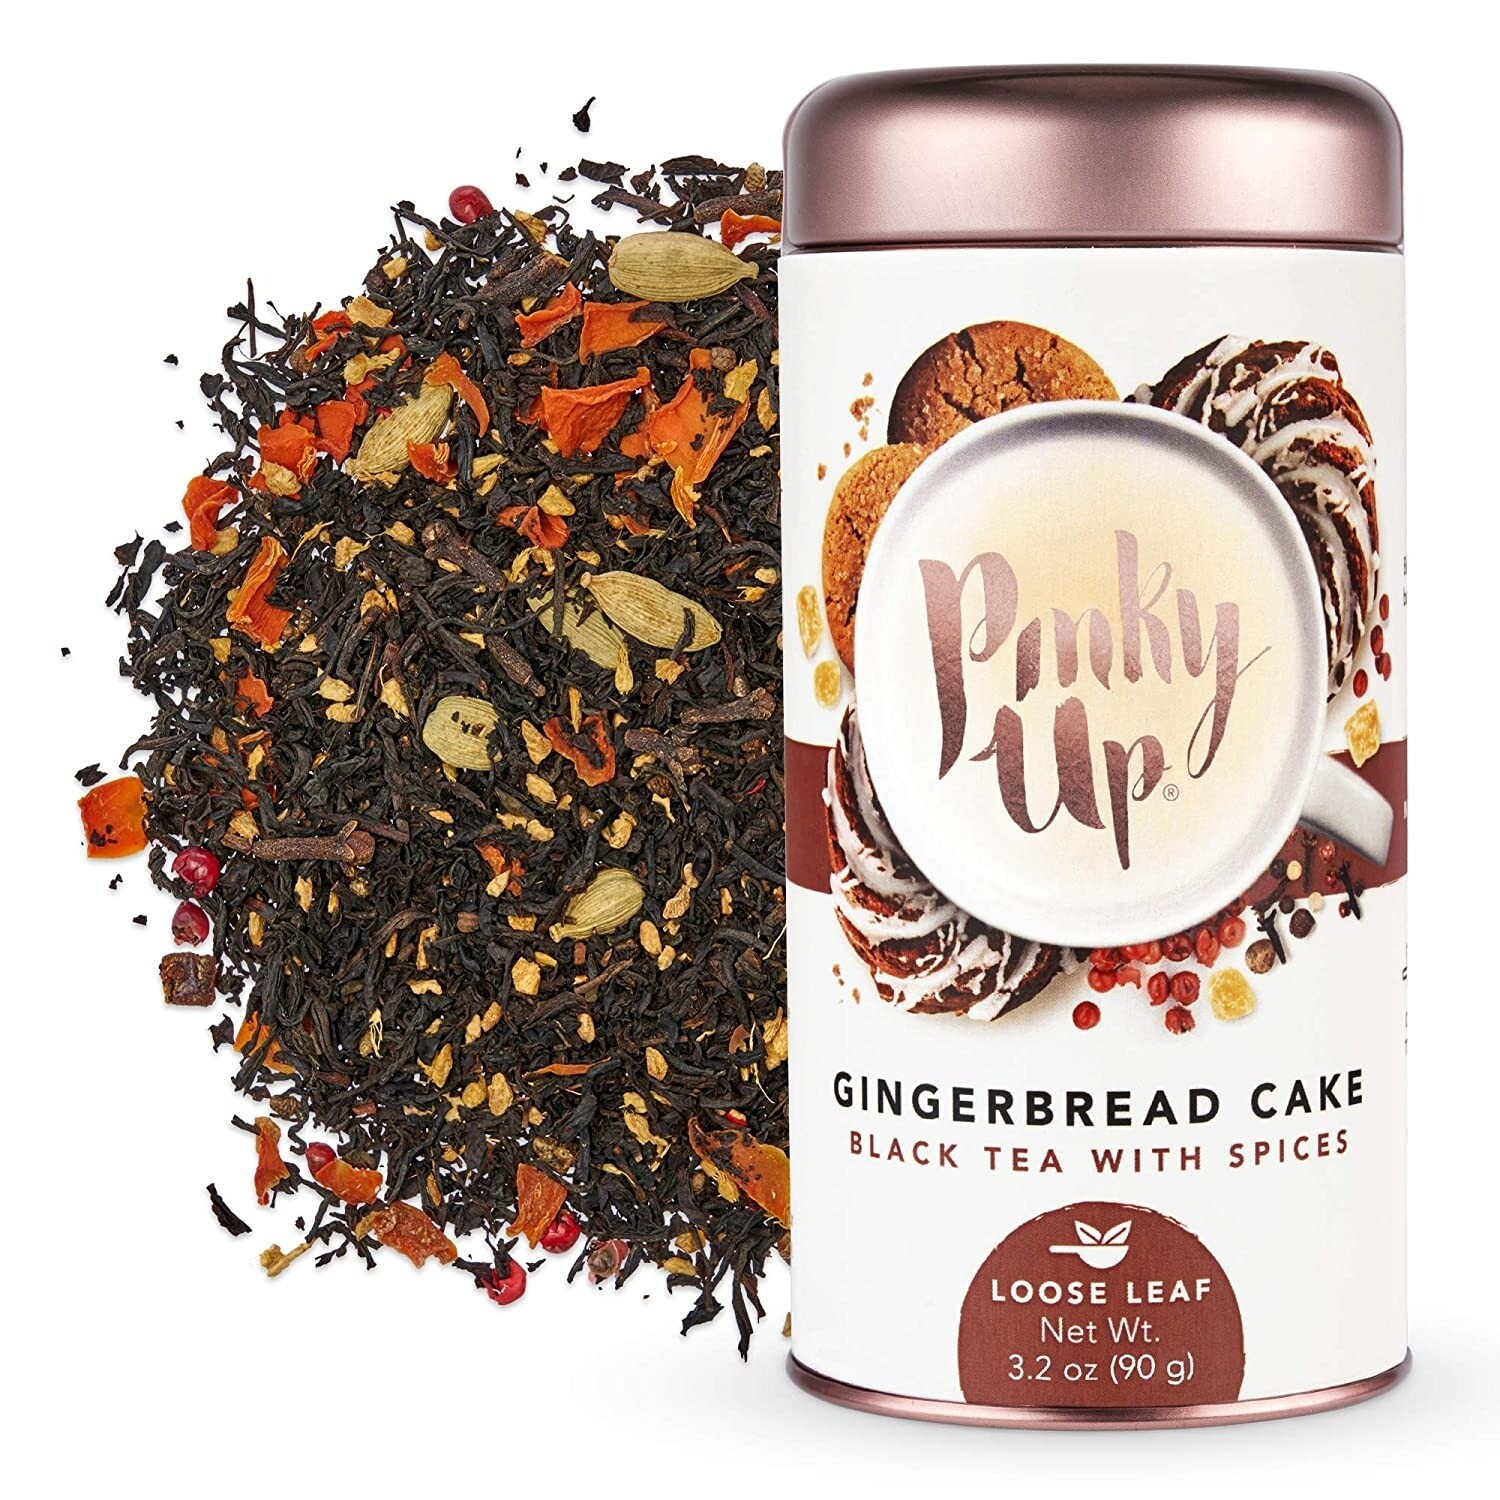 Pinky Up Gingerbread Cake Black Tea